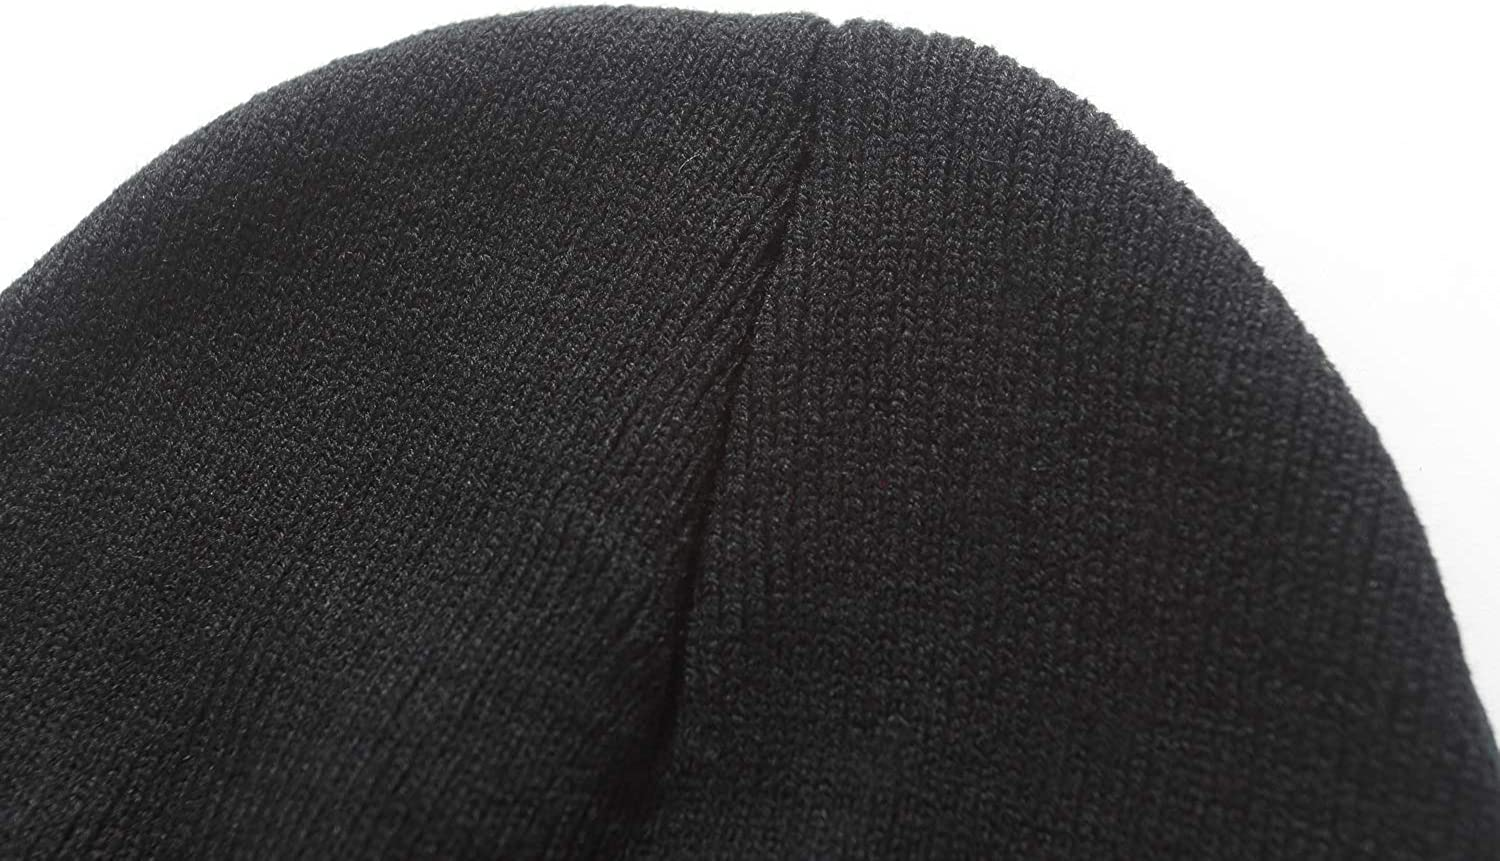 SSLR Big Kids Winter Warm Beanie Hat Plain Knit Skull Cap